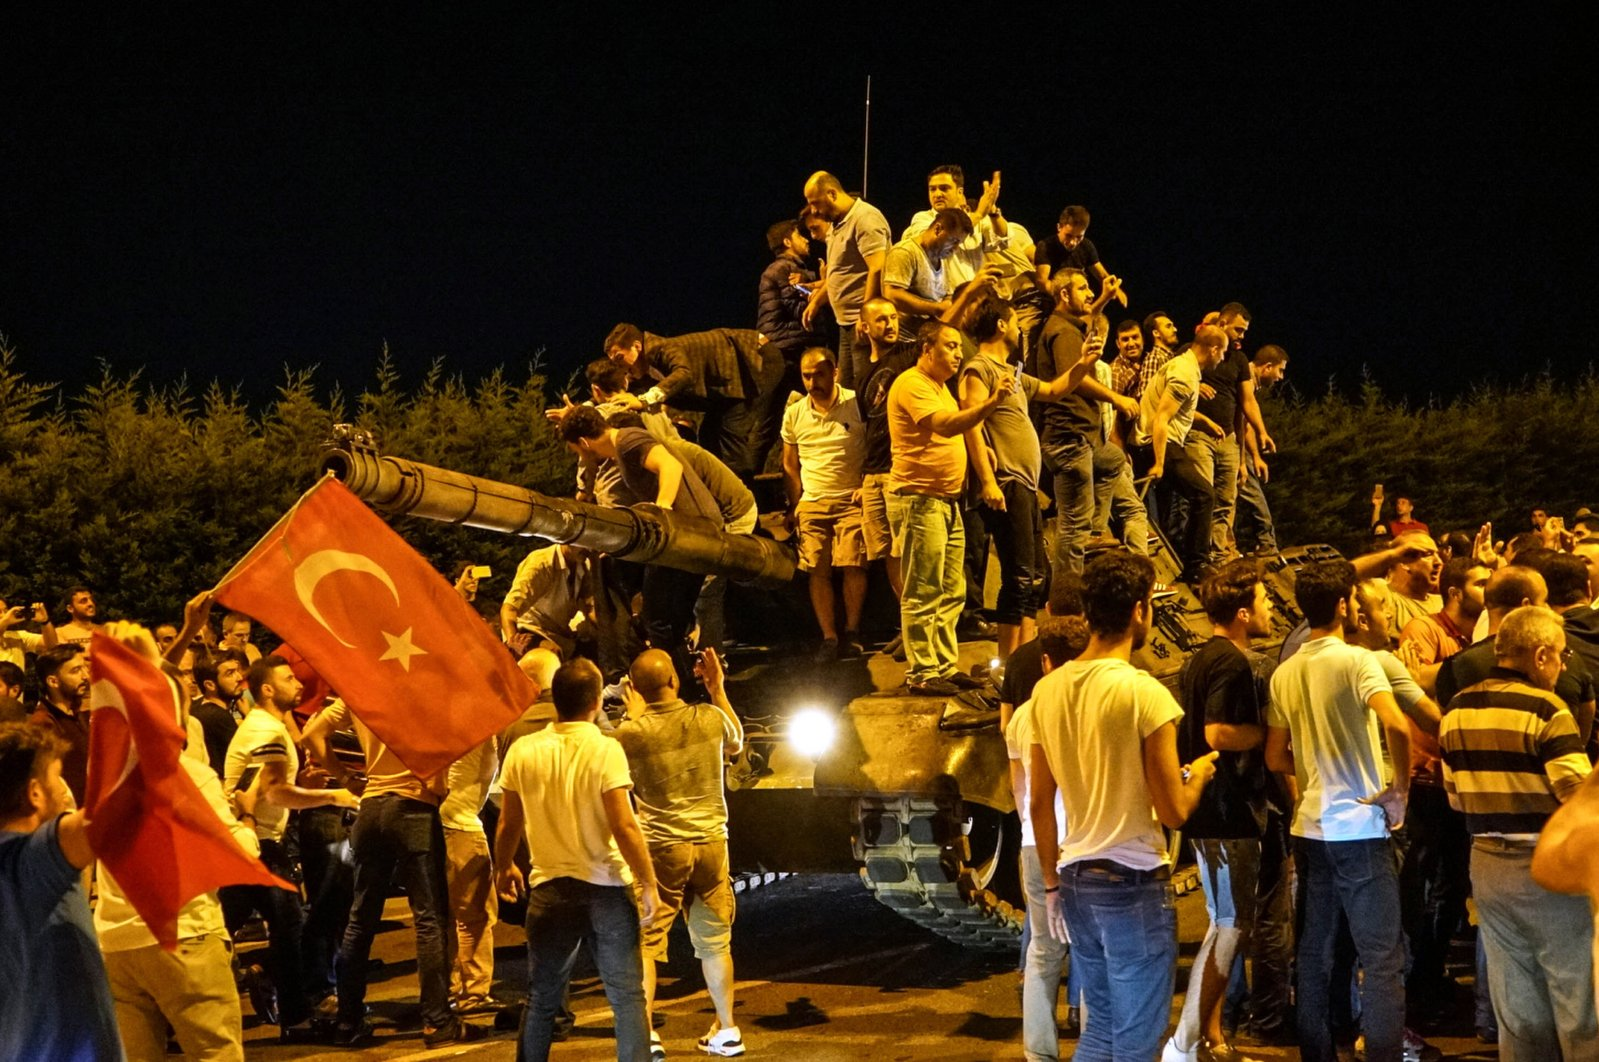 People gather on top of a tank, standing against the Gülenist coup attempt, at Atatürk Airport, Istanbul, Turkey, July 16, 2016. (Photo by Getty Images)